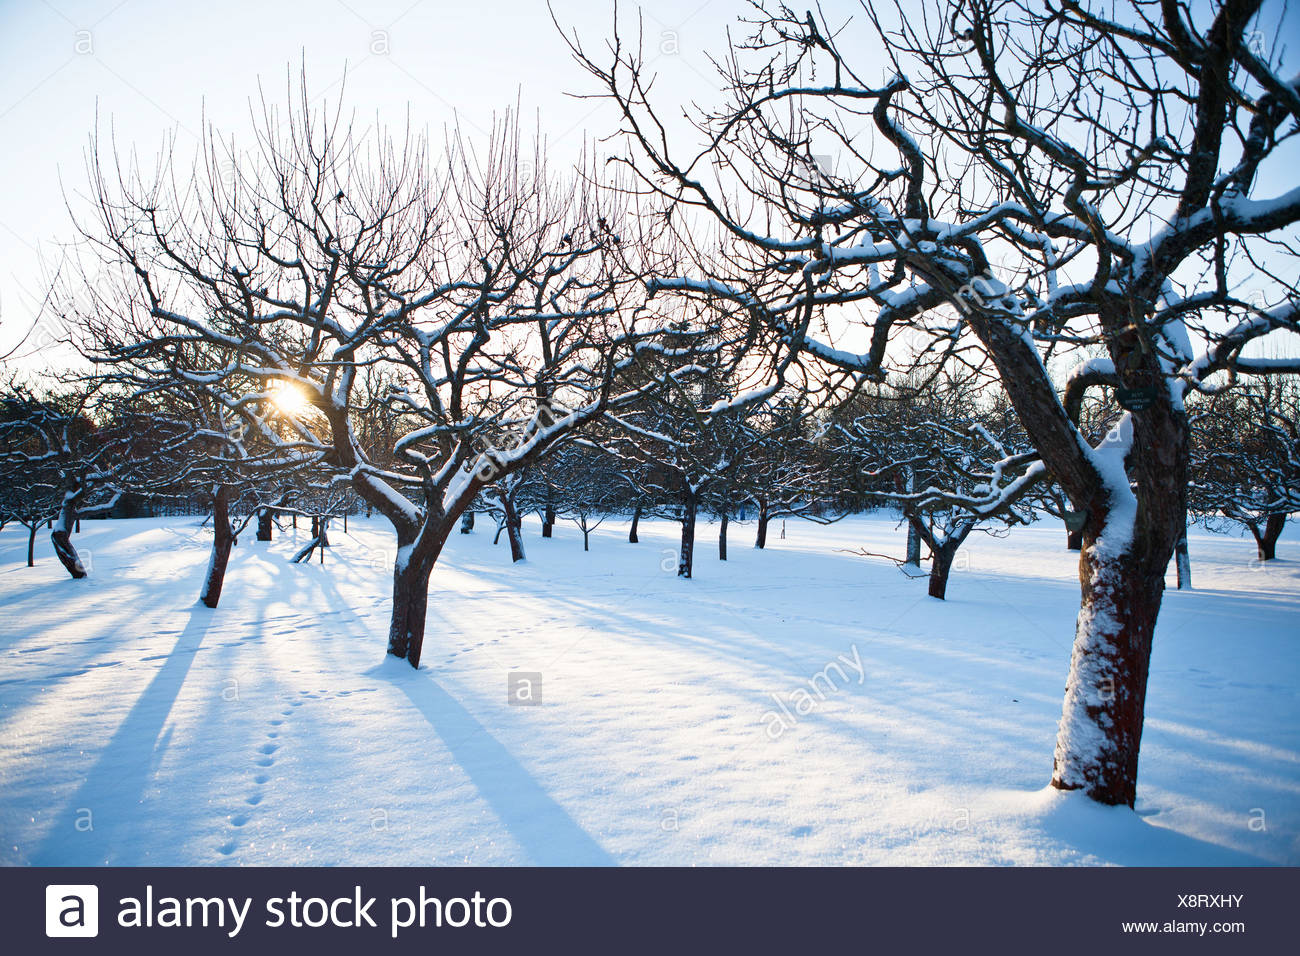 Snow covered trees in winter - Stock Image